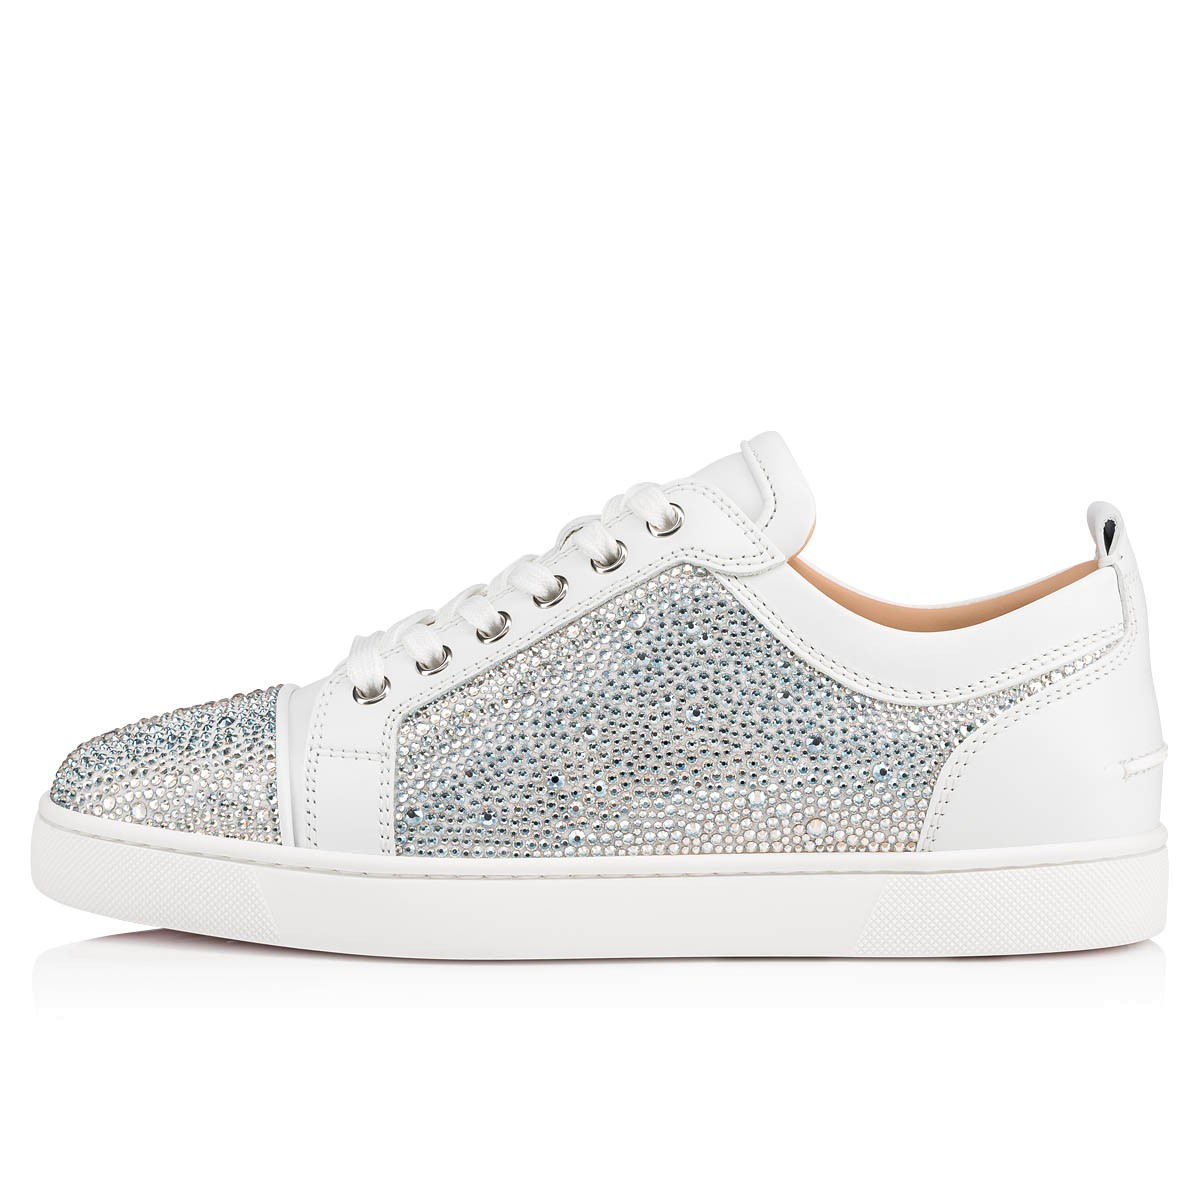 鞋履 - Louis Junior St 000 Strass - Christian Louboutin